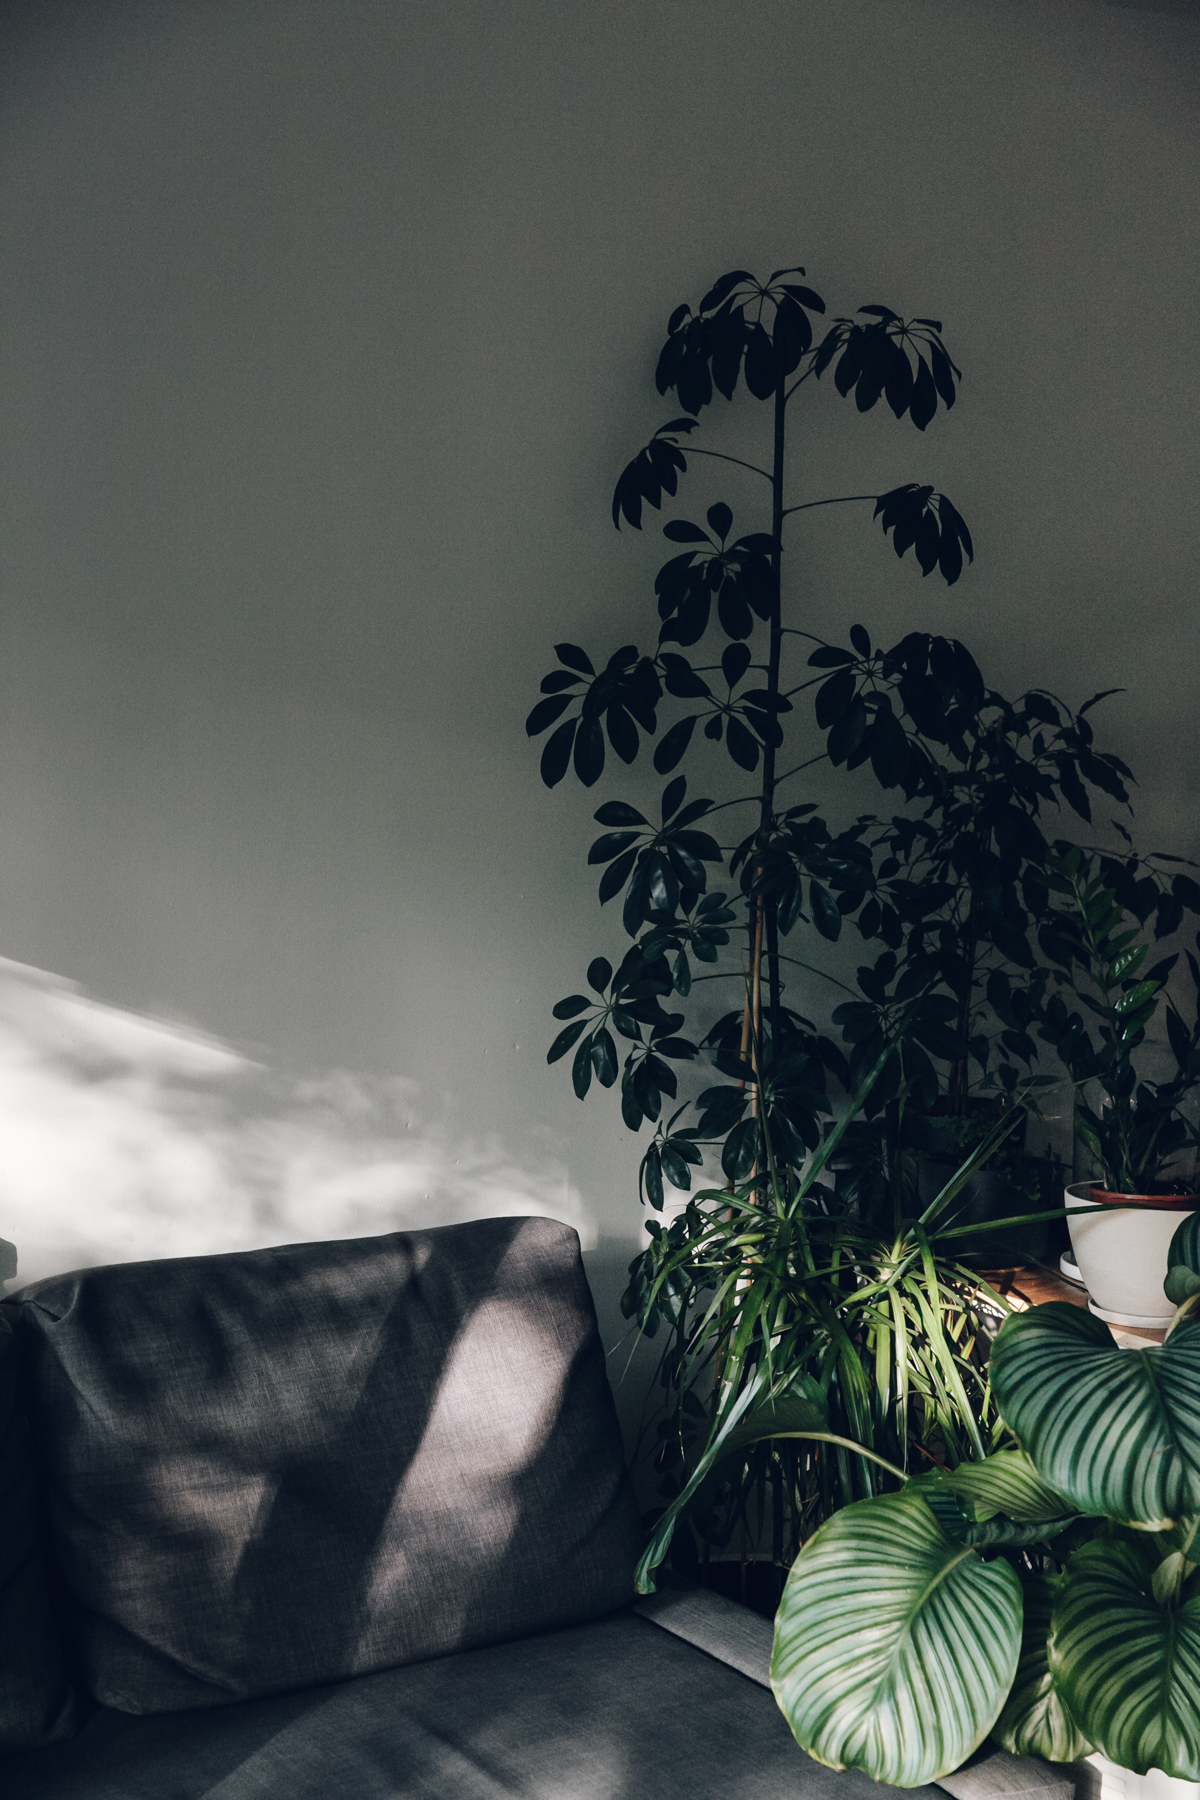 Gorgeous light and plants.